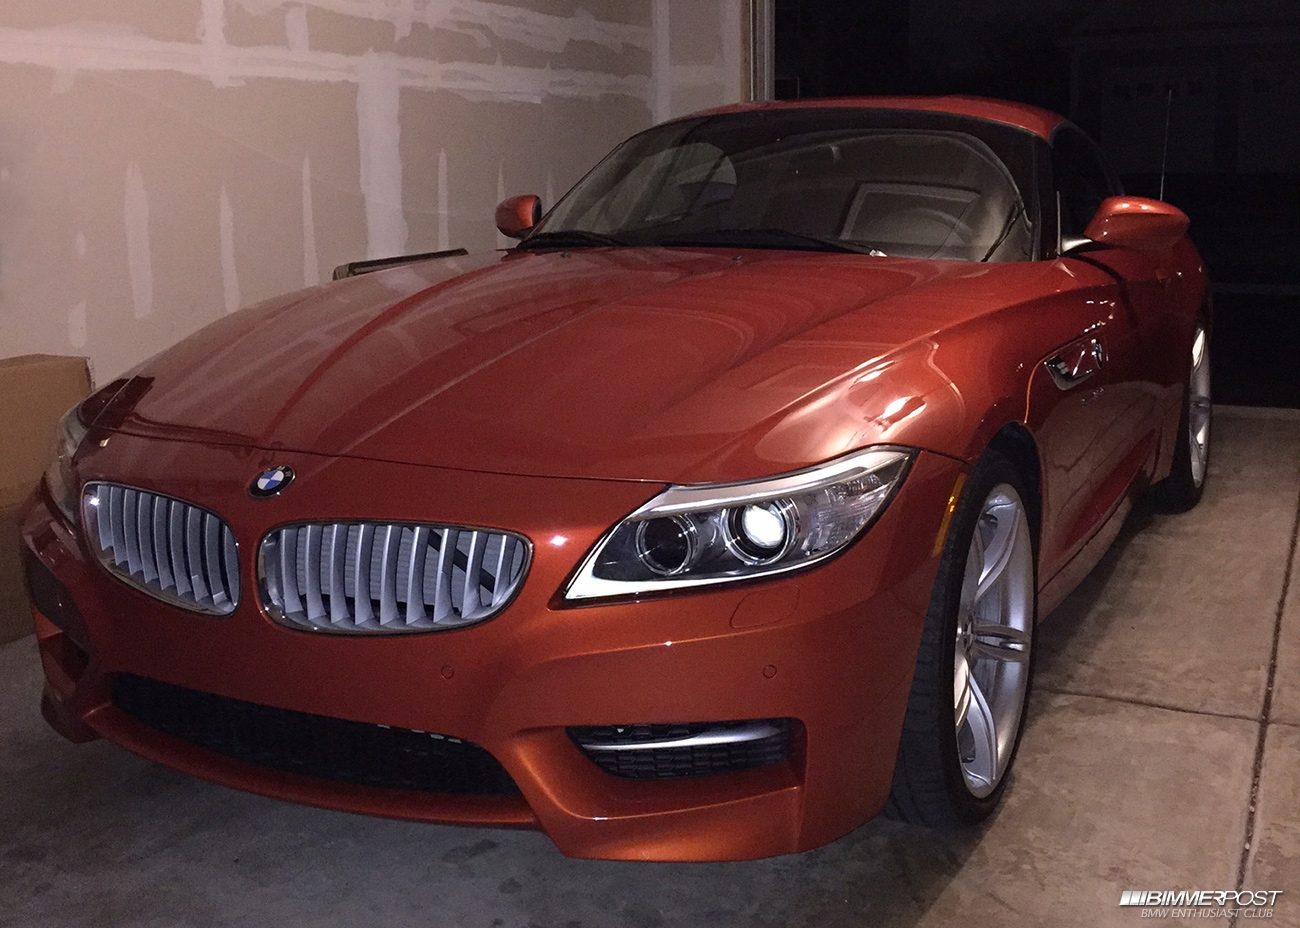 Karnidge S 2014 Bmw Z4 35is Bimmerpost Garage